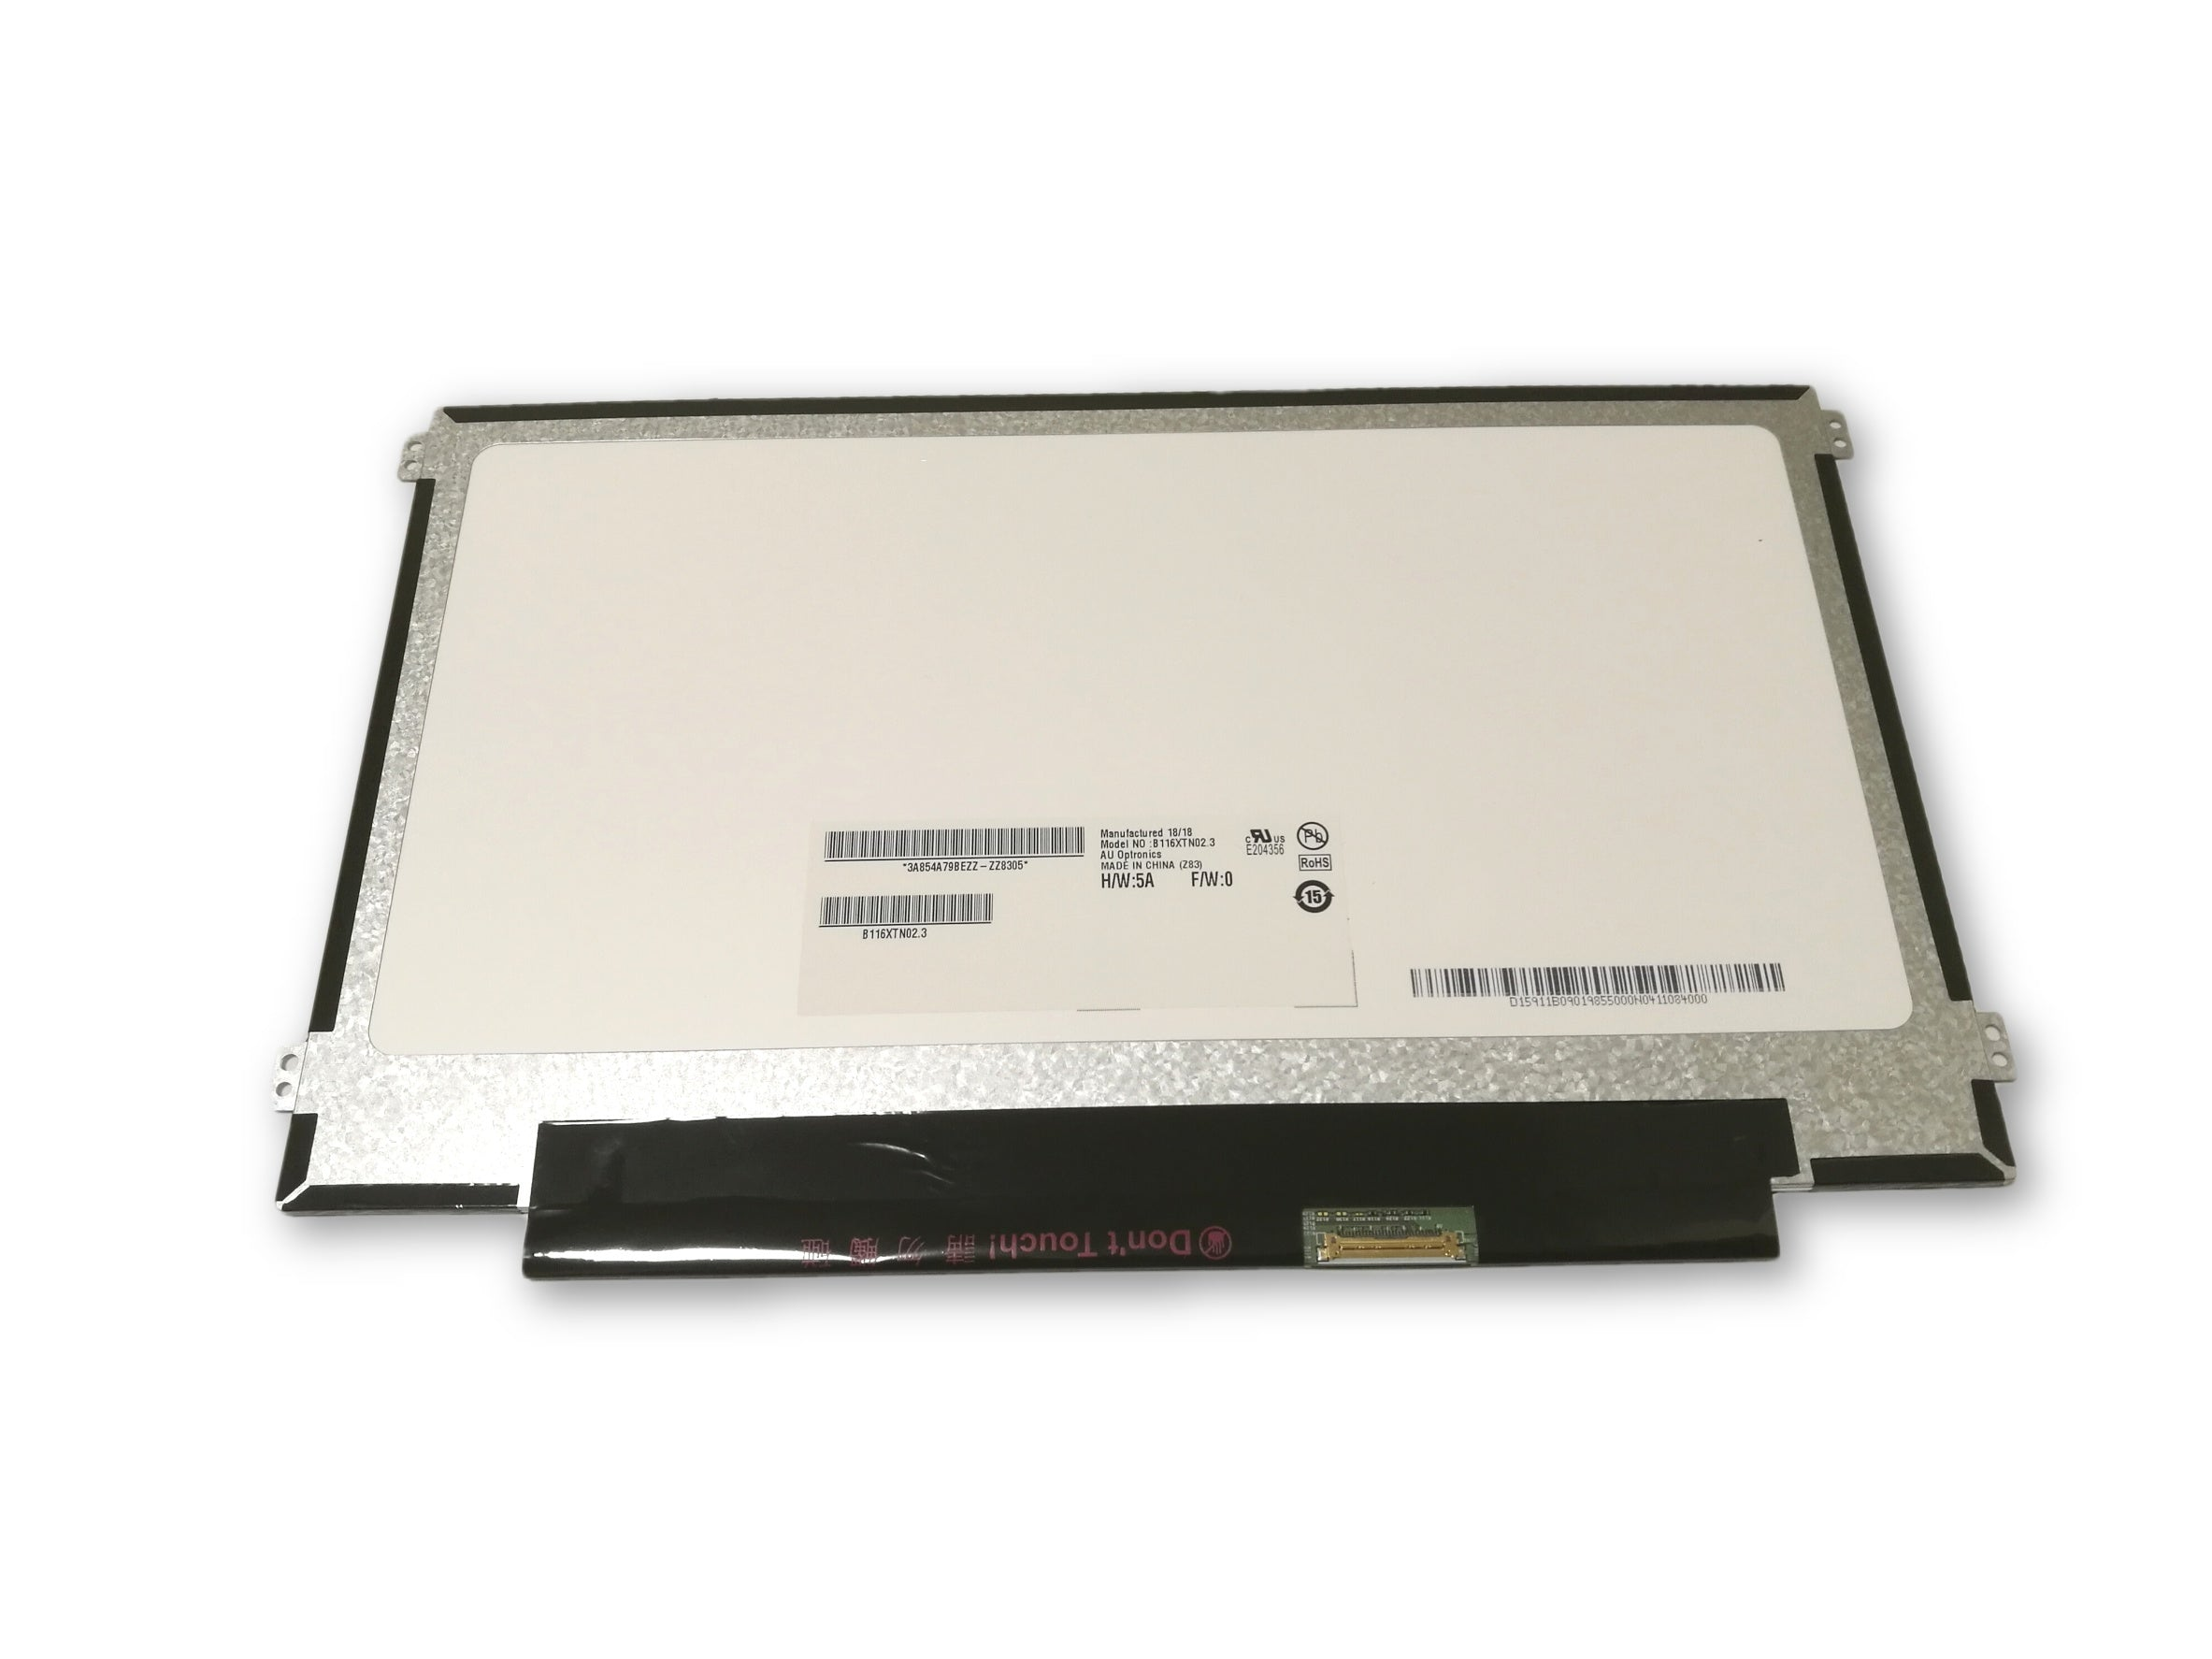 Samsung Chromebook 11 XE500C13 LCD Screen - B116XTN02.3